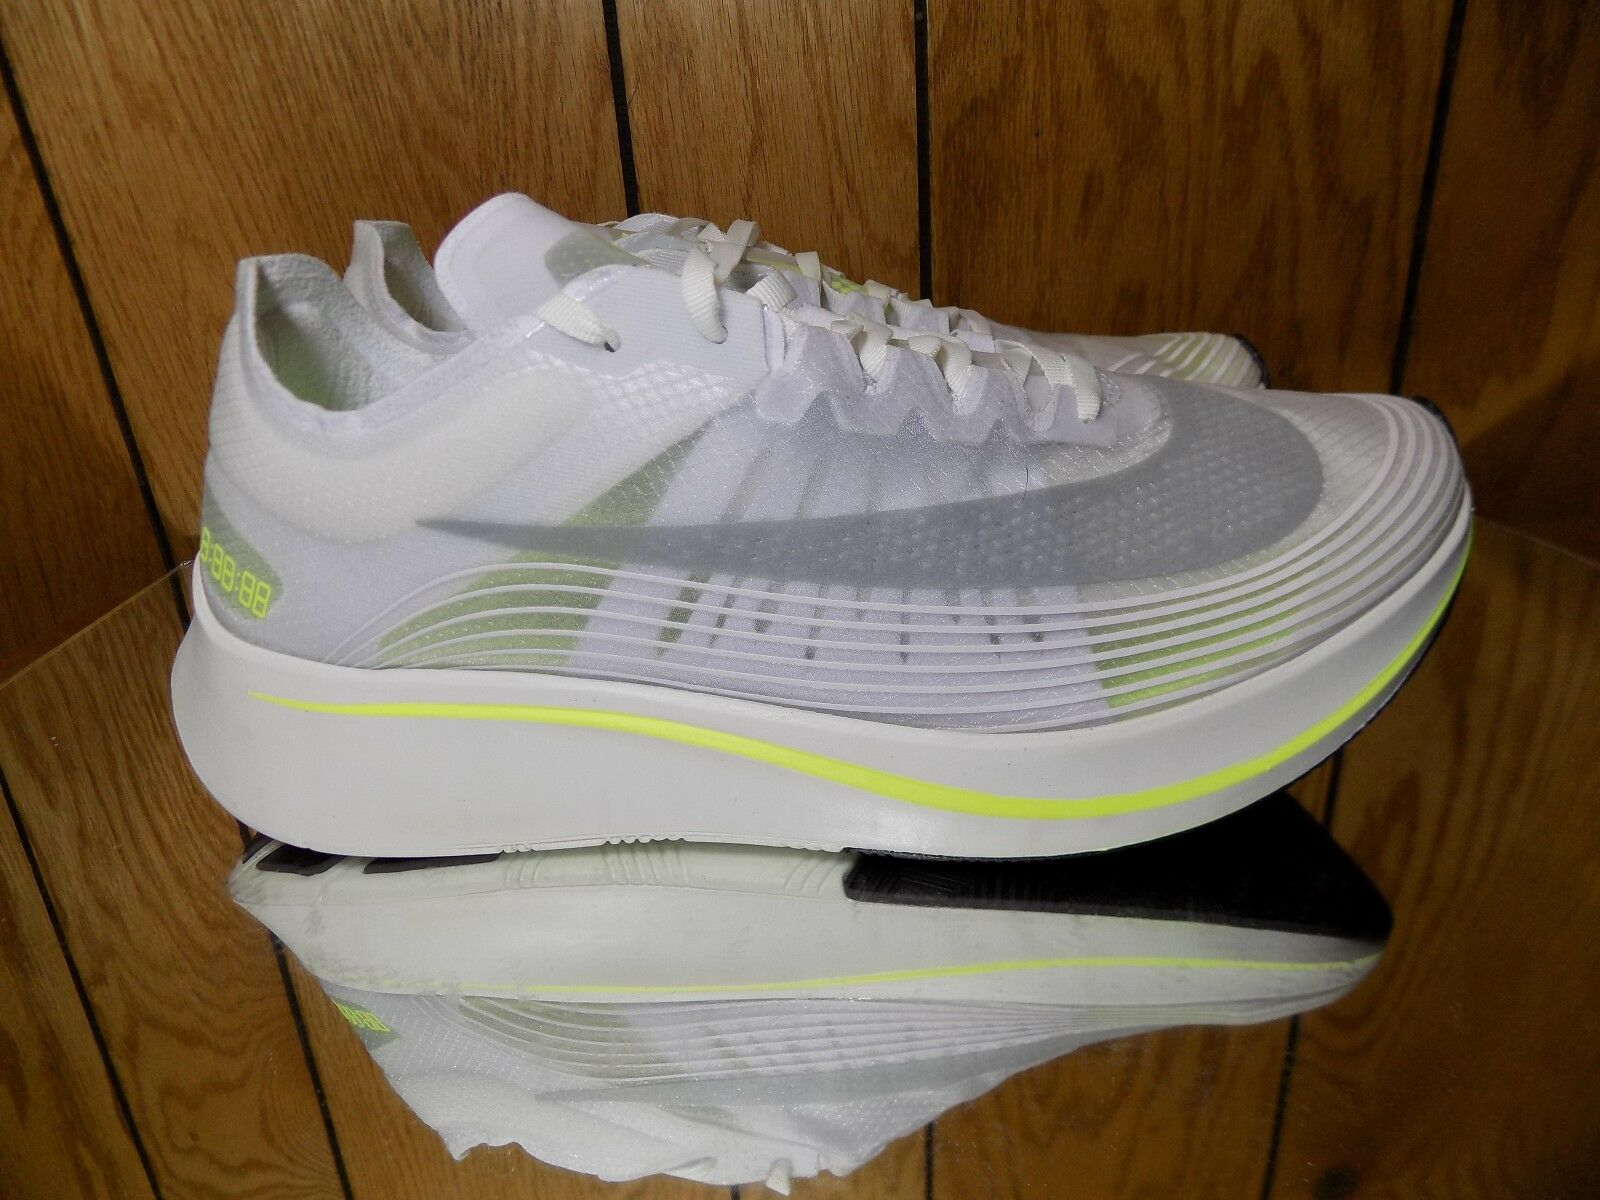 Nike Zoom Fly SP NikeLab BOSTON MARATHON CITY WHITE VOLT AJ9282-107 sz 9.5